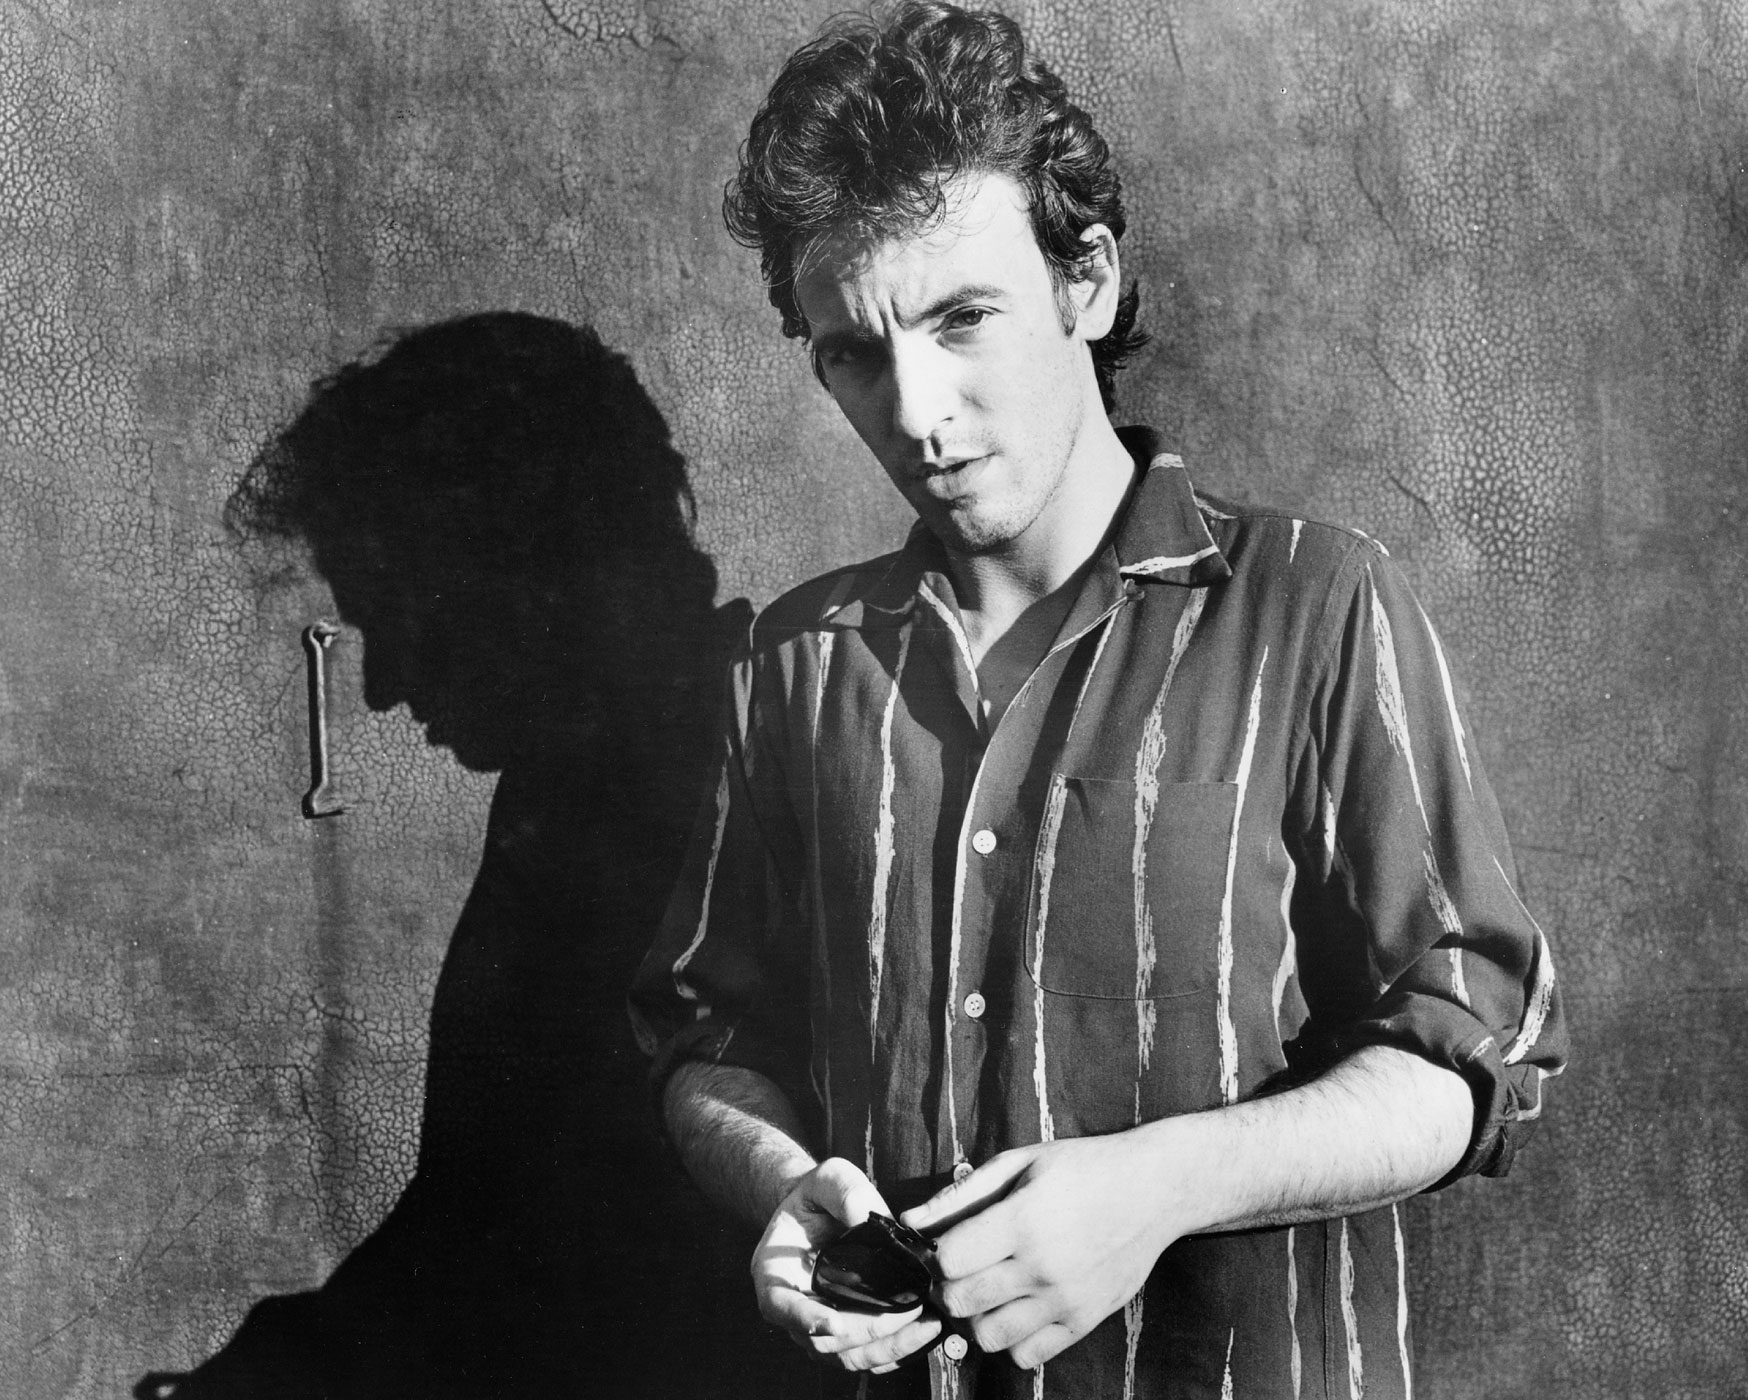 1972: Springsteen's manager Mike Appel arranged for an audition in front of Columbia Records talent scout John Hammond, the man who discovered Bob Dylan and Billie Holiday.